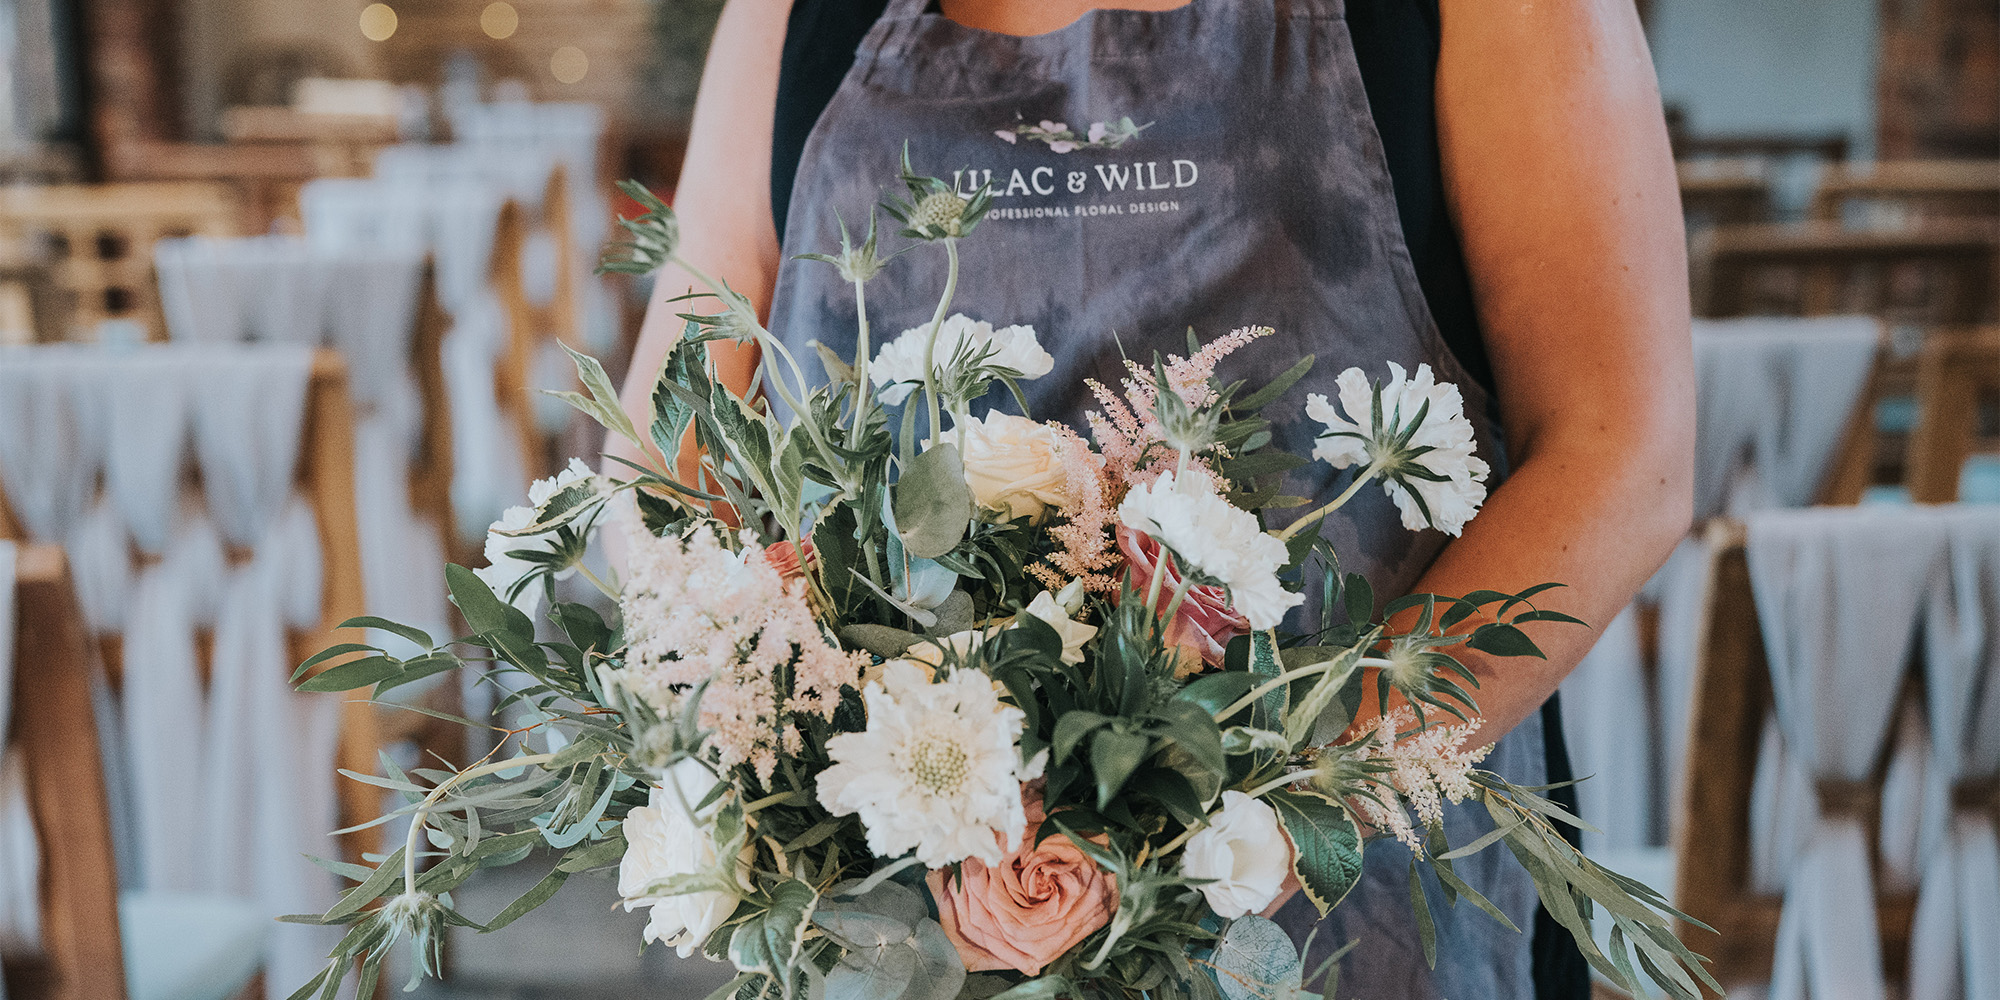 Lilac & Wild Florist Coventry